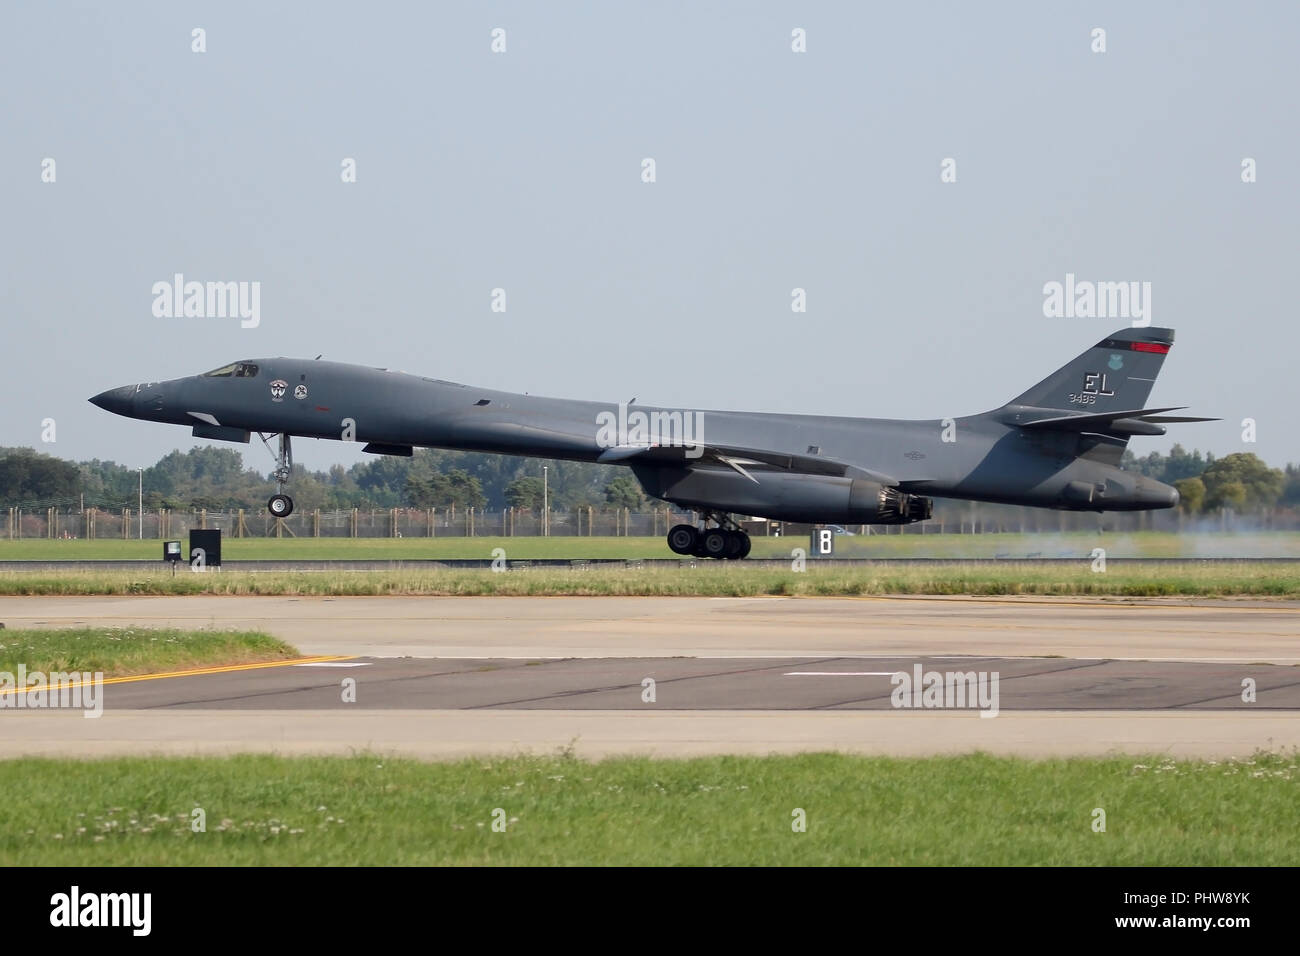 Rockwell B-1B Lancer from the 34th Bomb Squadron at Ellsworth AFB, South Dakota landing at RAF Mildenhall, Suffolk for a brief fuel. stop. - Stock Image